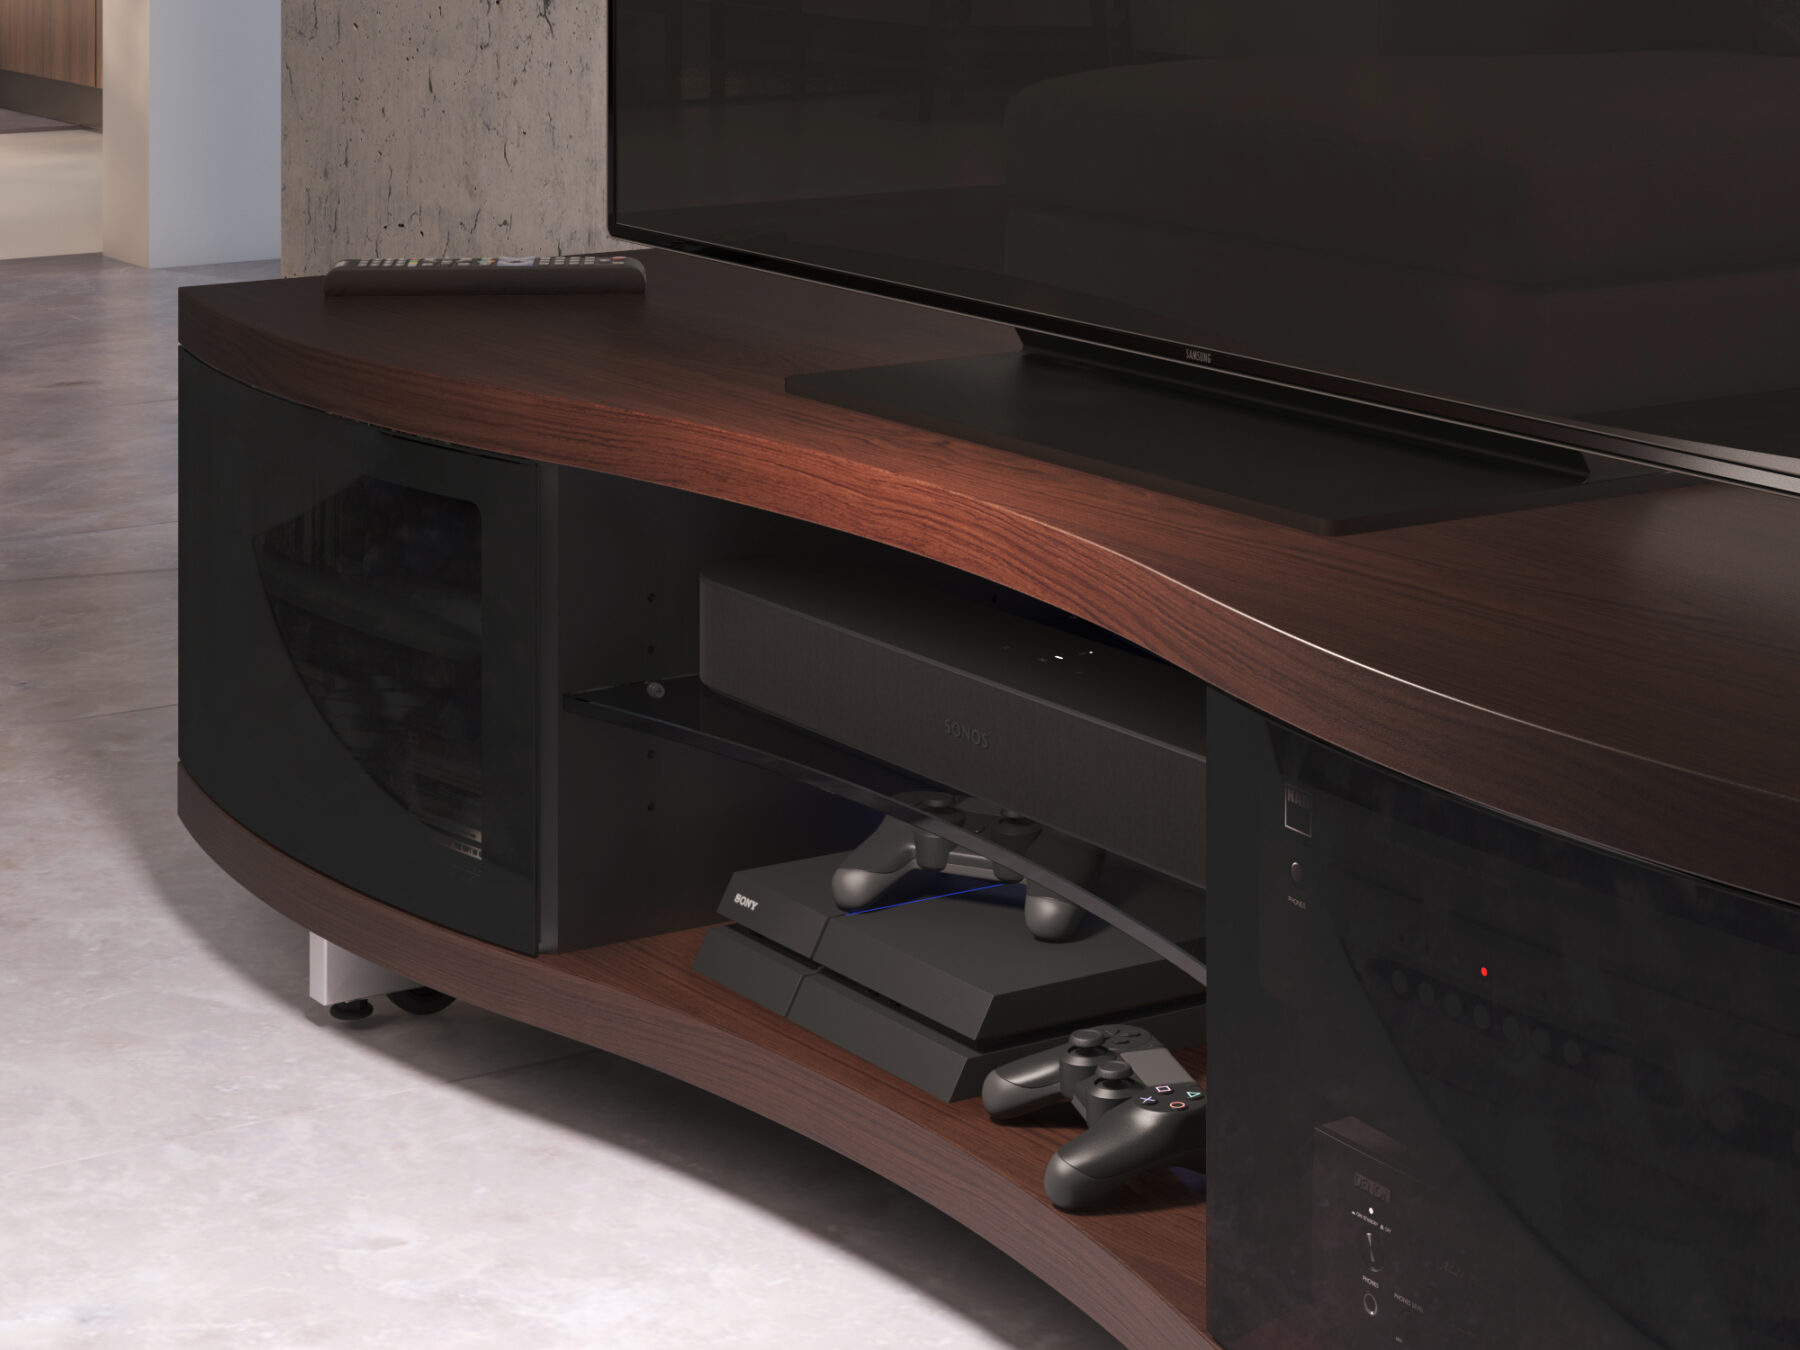 ola-8137-chocolate-bdi-modern-tv-cabinet-2